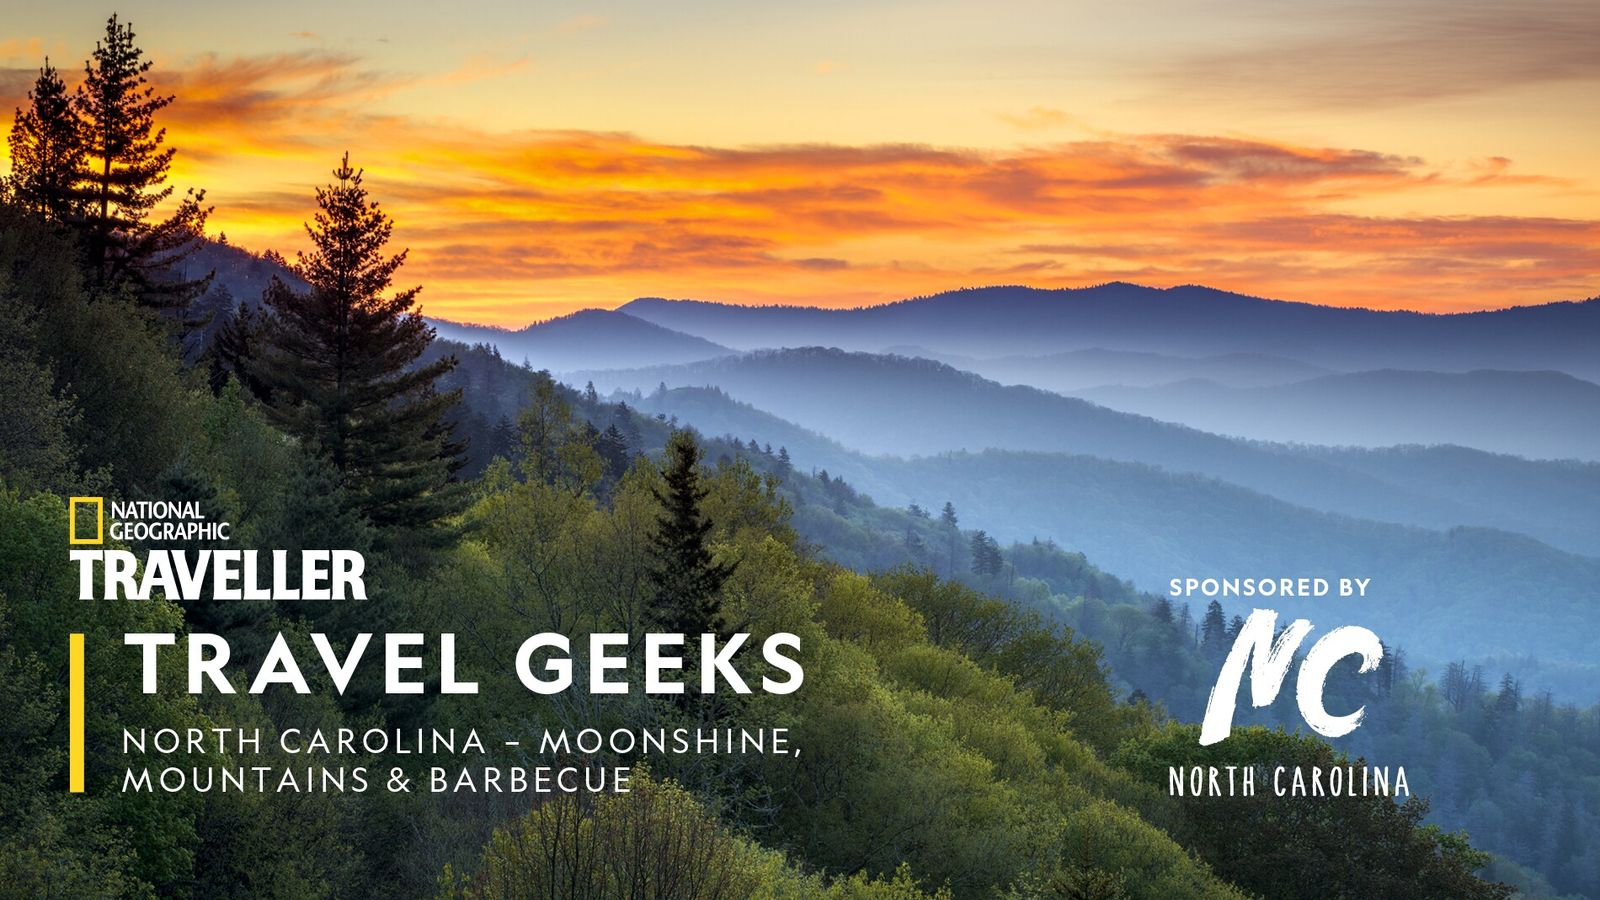 At our next online Travel Geeks event we'll explore North Carolina, a coastal state with a fascinating ...